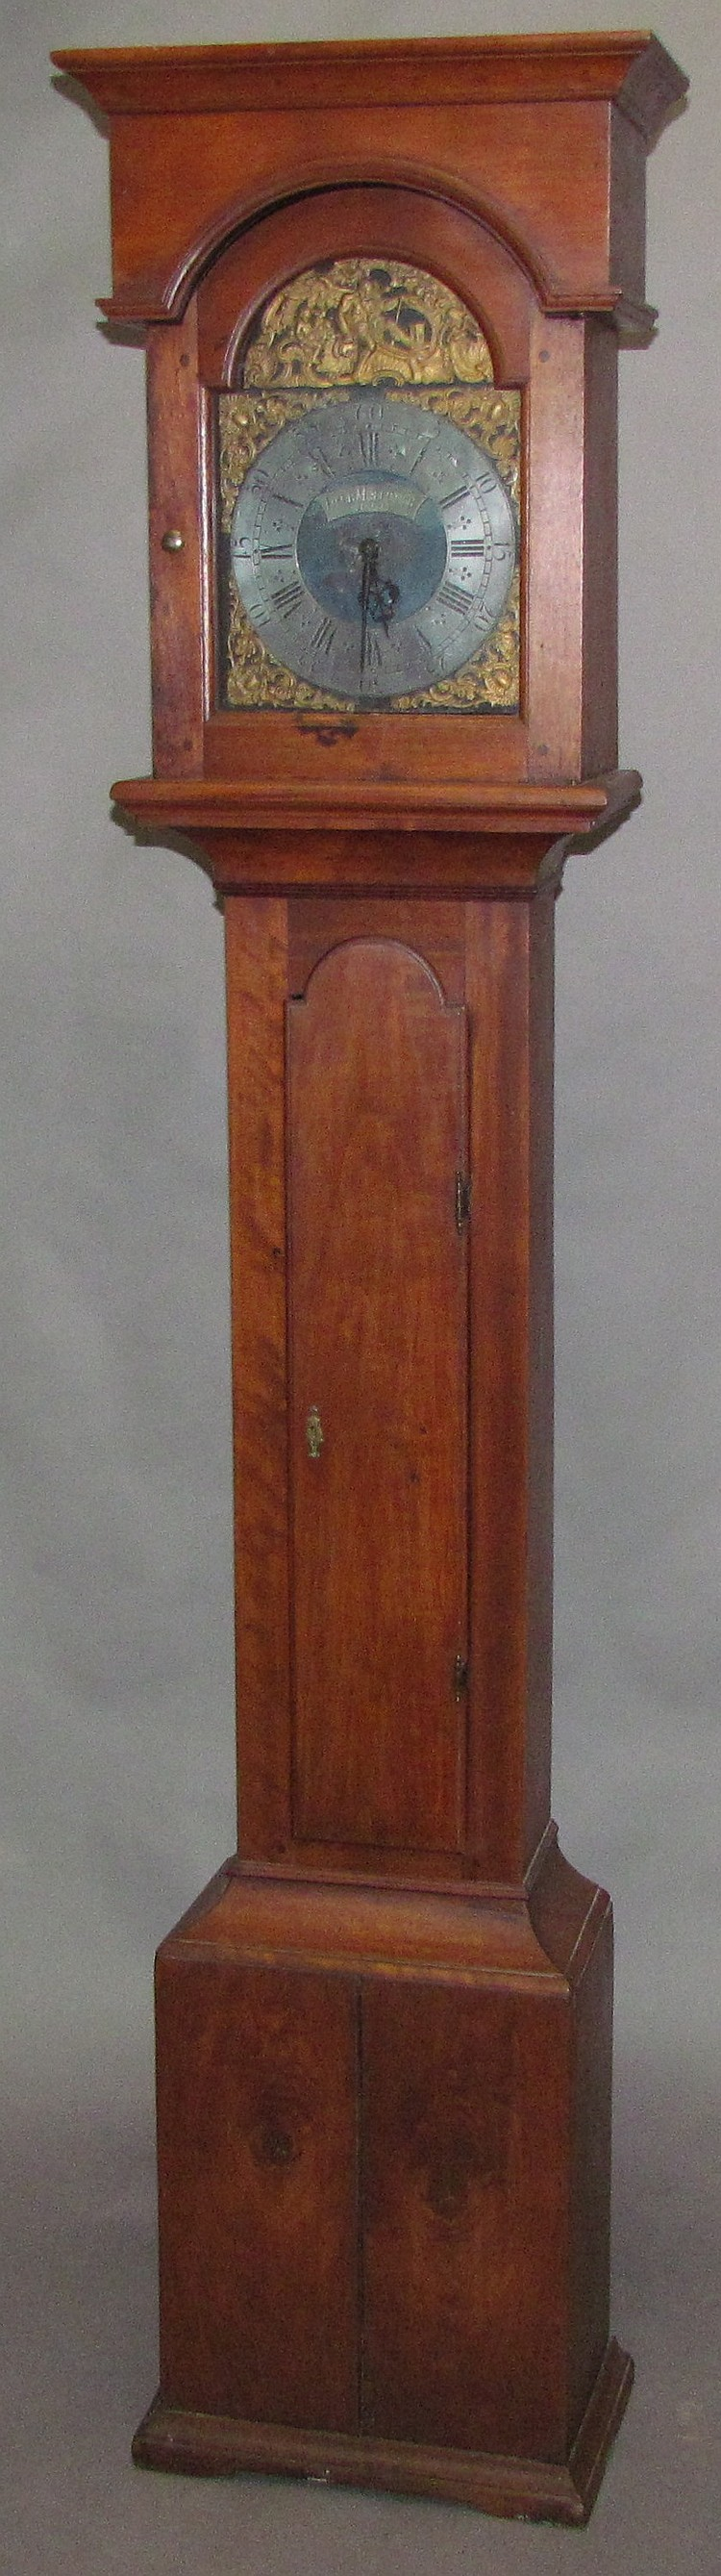 Lancaster County walnut flat top tall case clock with arched dial by Hans Jacob Moellinger